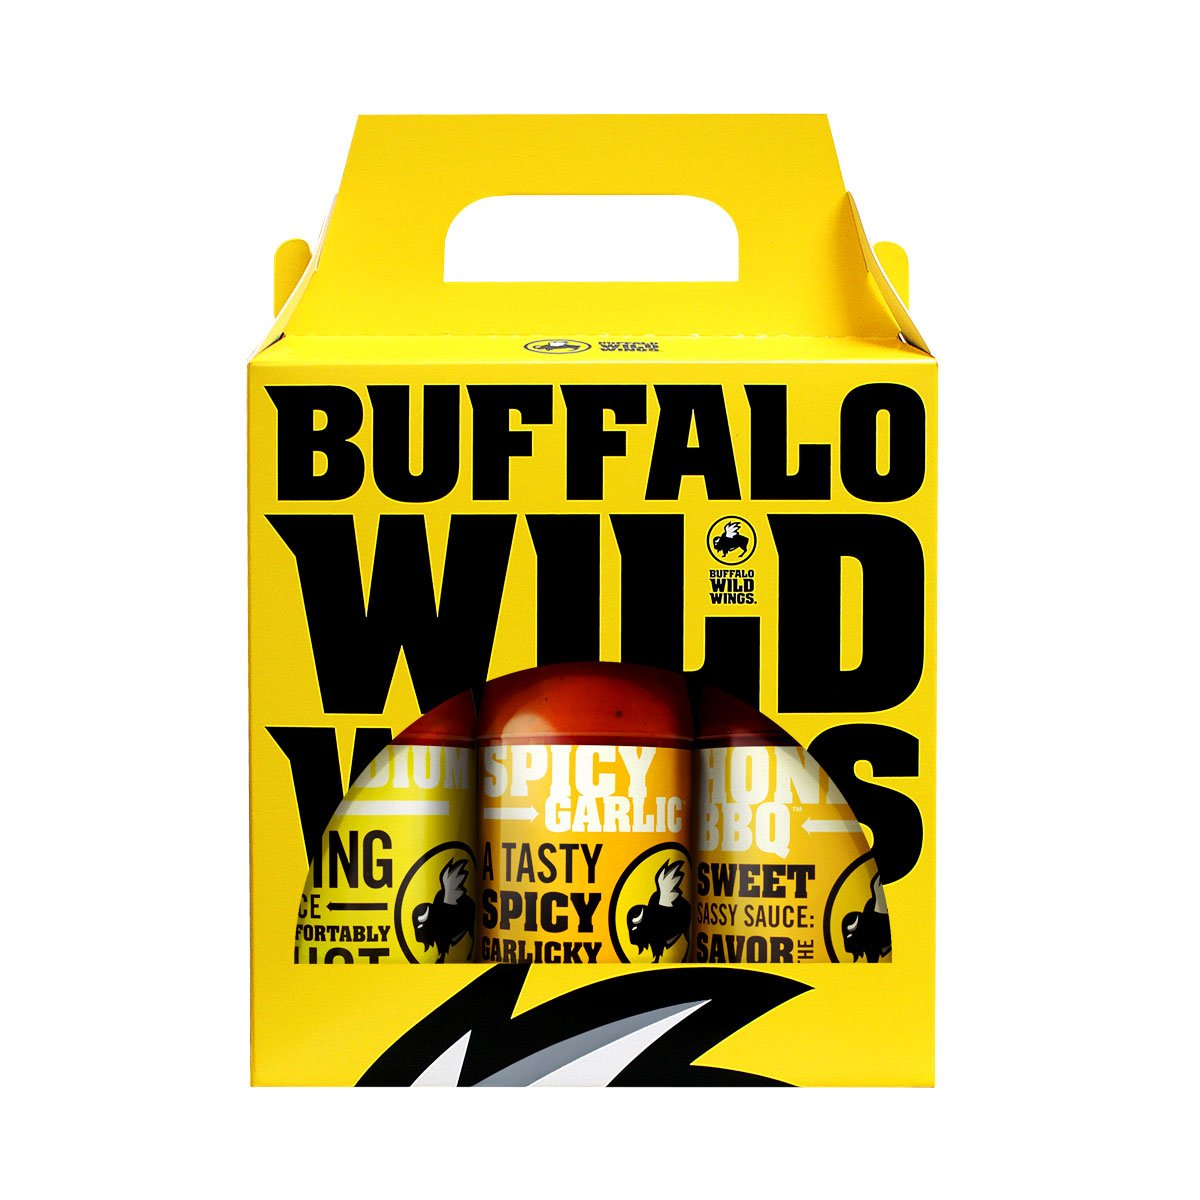 Buffalo Wild Wings Flavor Variety Pack (Medium, Spicy Garlic, Honey BBQ)